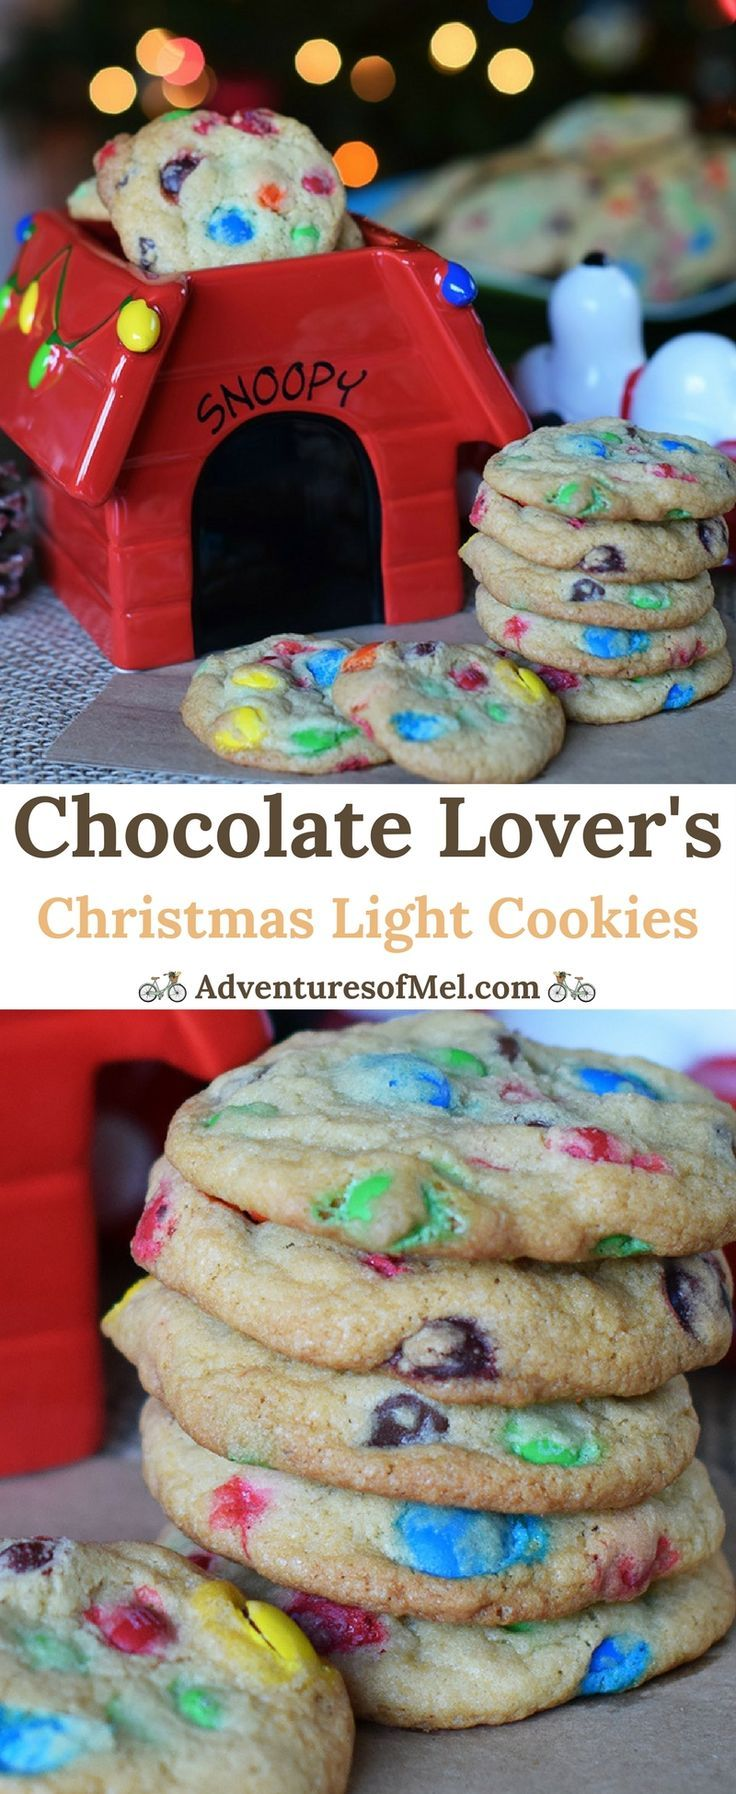 How to make a scrumptious holiday treat, Chocolate Lover's Christmas Light Cookies. Filled with M&M's, perfect for a Christmas party dessert! ad